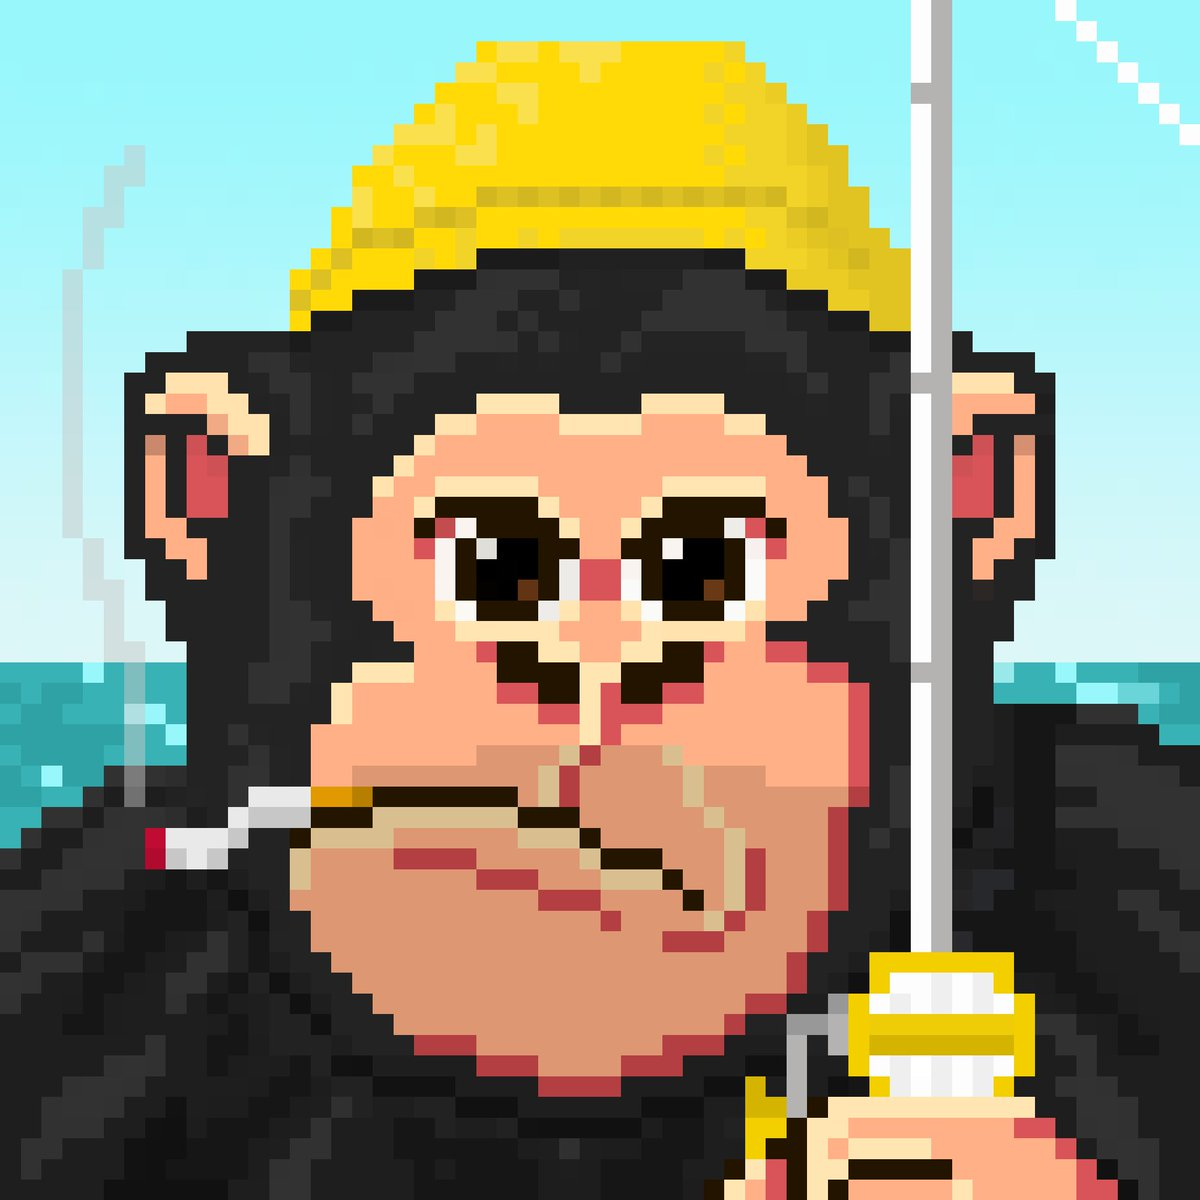 🦍💋🏋️♀️Woman want me, fish fear me! 🎣☠️🦍  discord.com/invite/RTZQn2M…  #NFT #PixeloftheApes #ApesTogetherStrong #NFTCollectors #NFTCommunity #NFTsForGood  #NFTPixels #OpenSea @OpenSea #sea  🦍🍣Remember Apes Together Strong🍣🦍